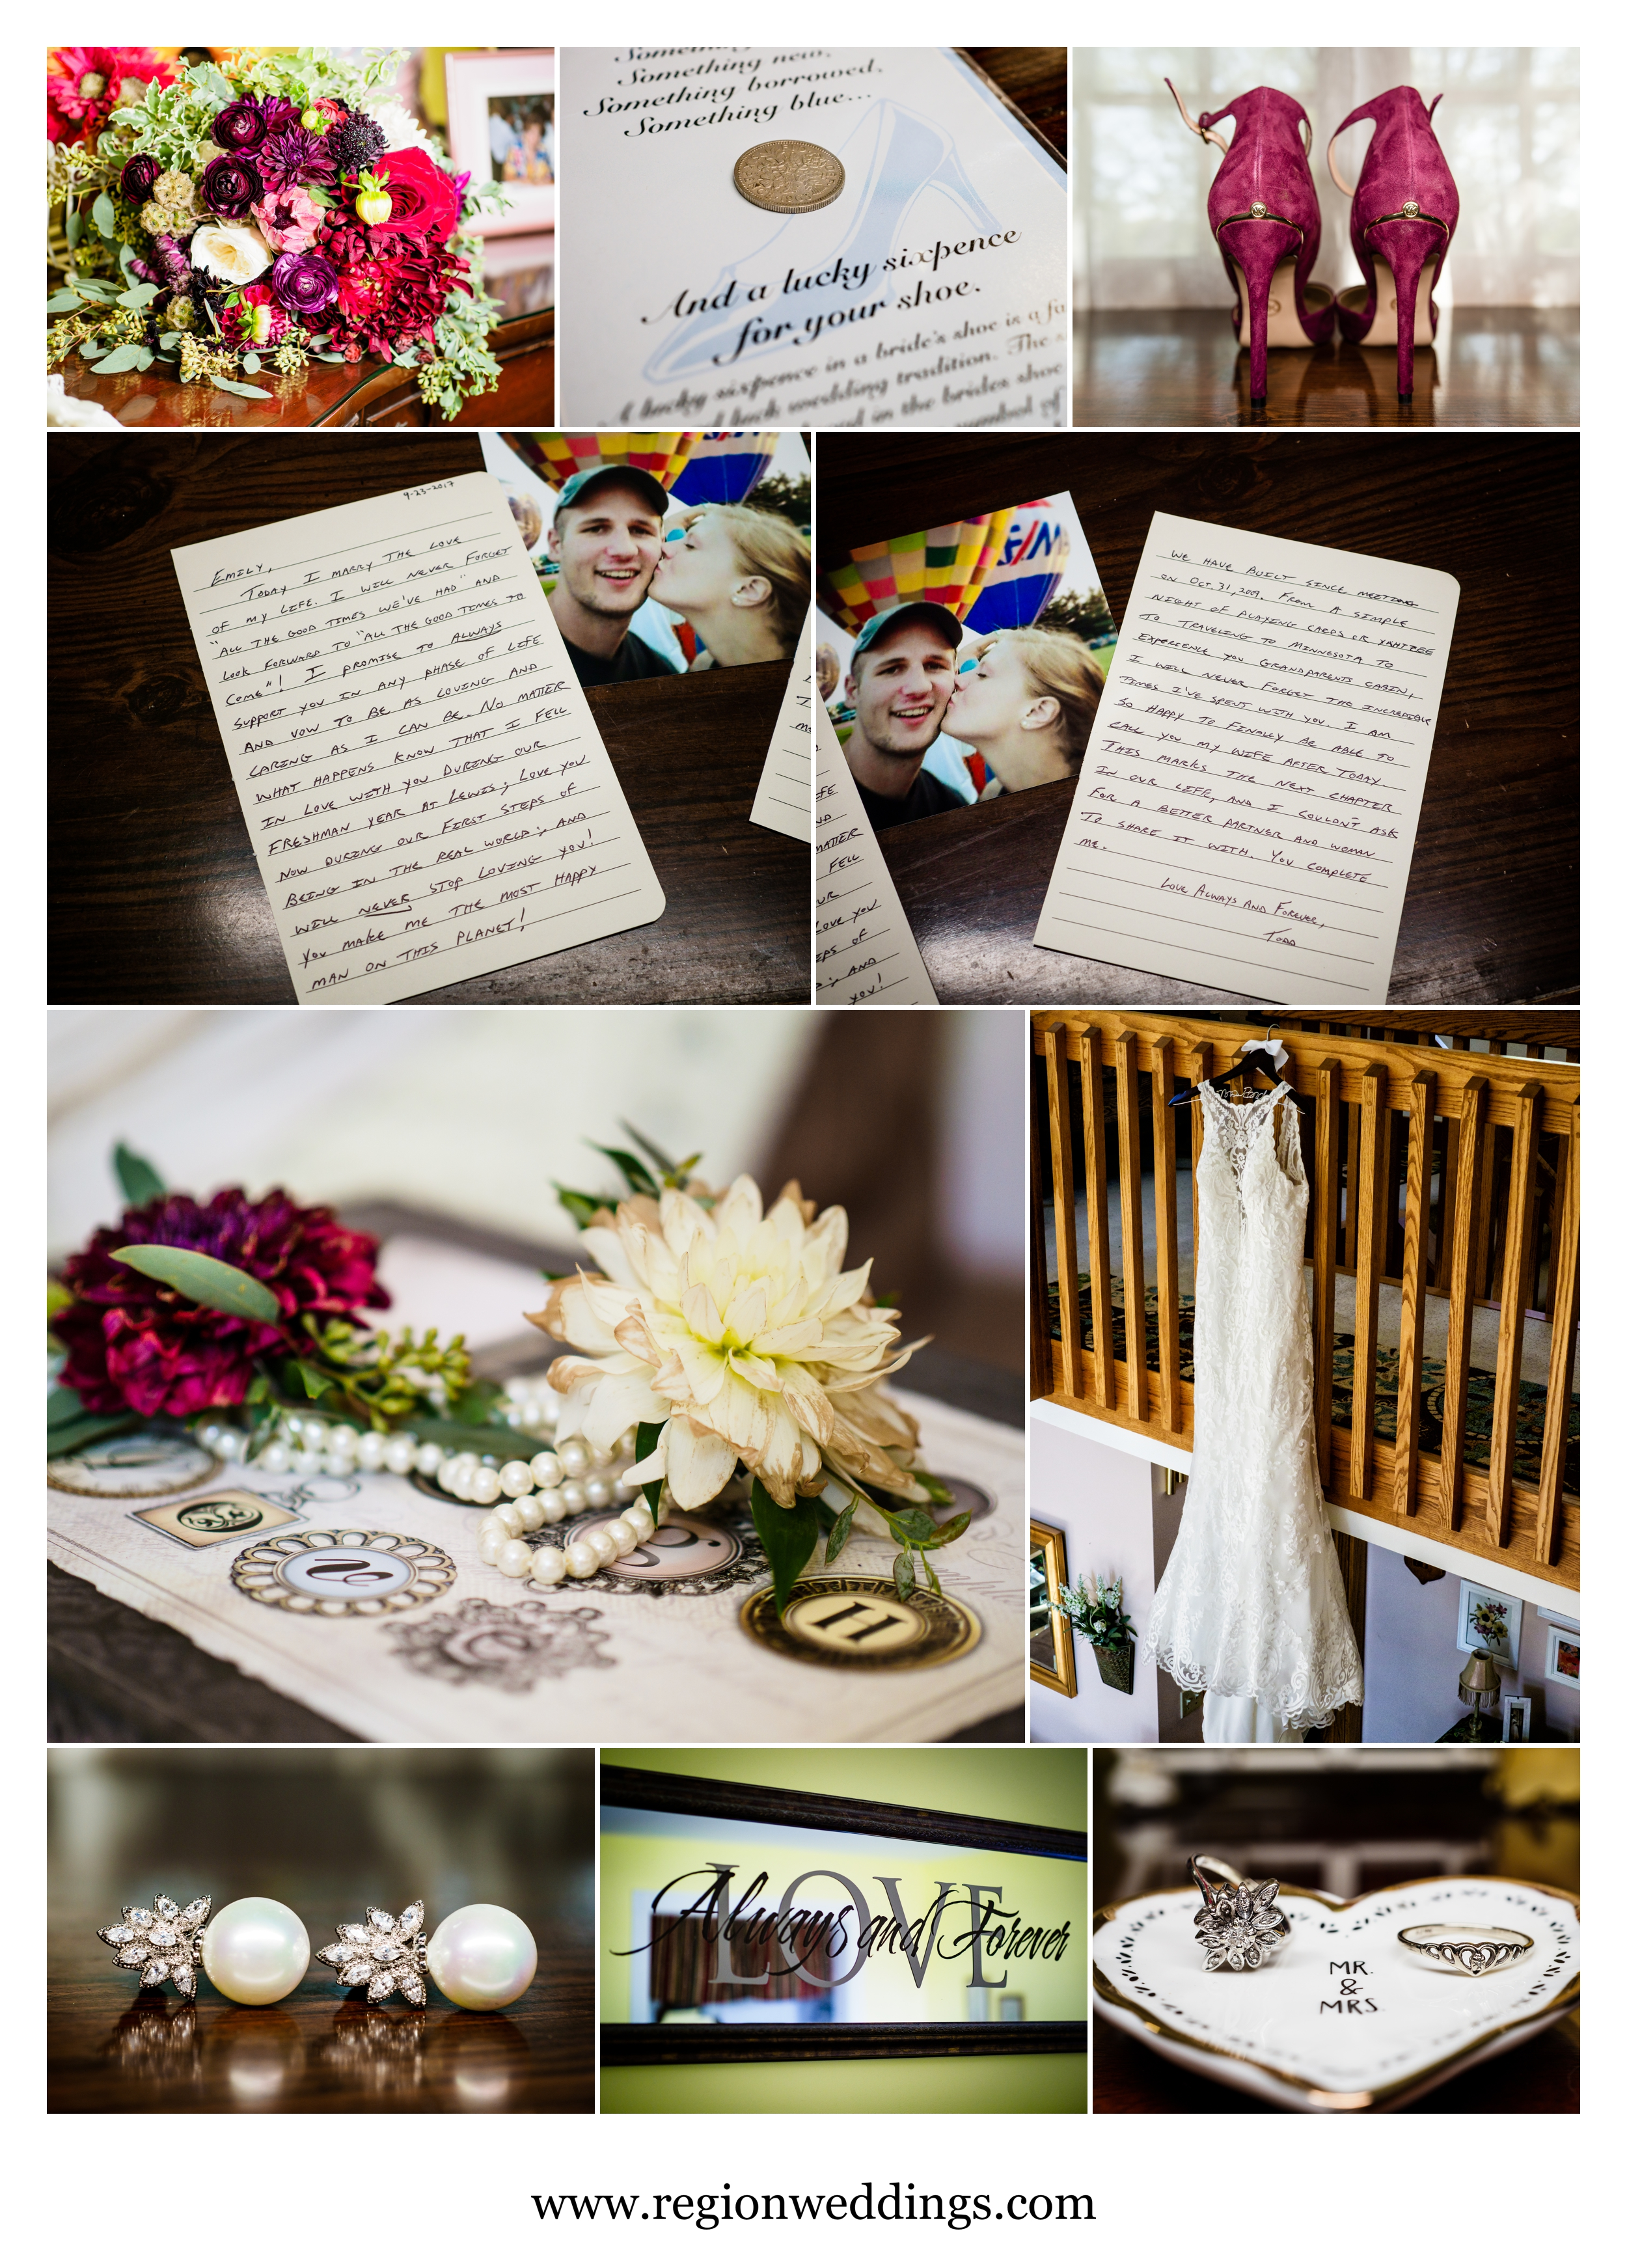 Bridal details at the bride's childhood home on wedding day.